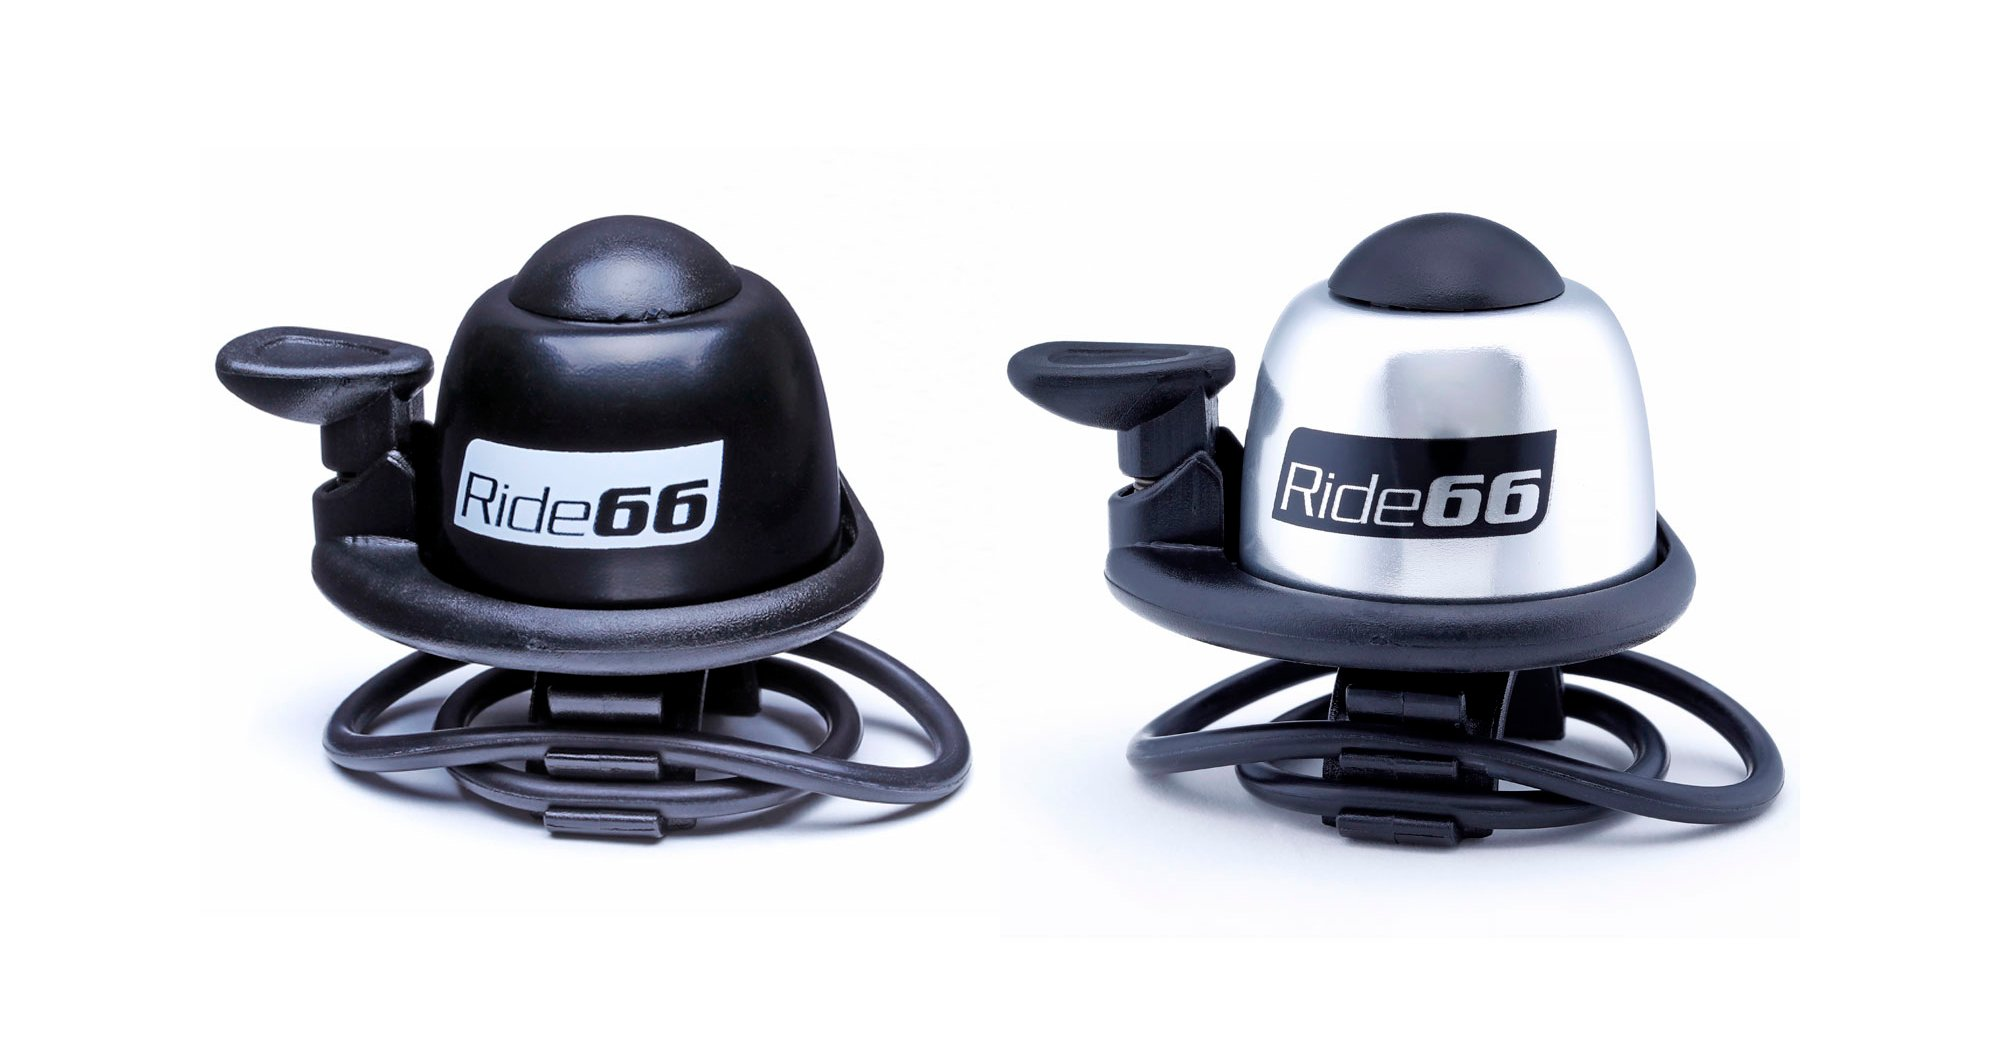 Ride66 Loud Bicycle Bell